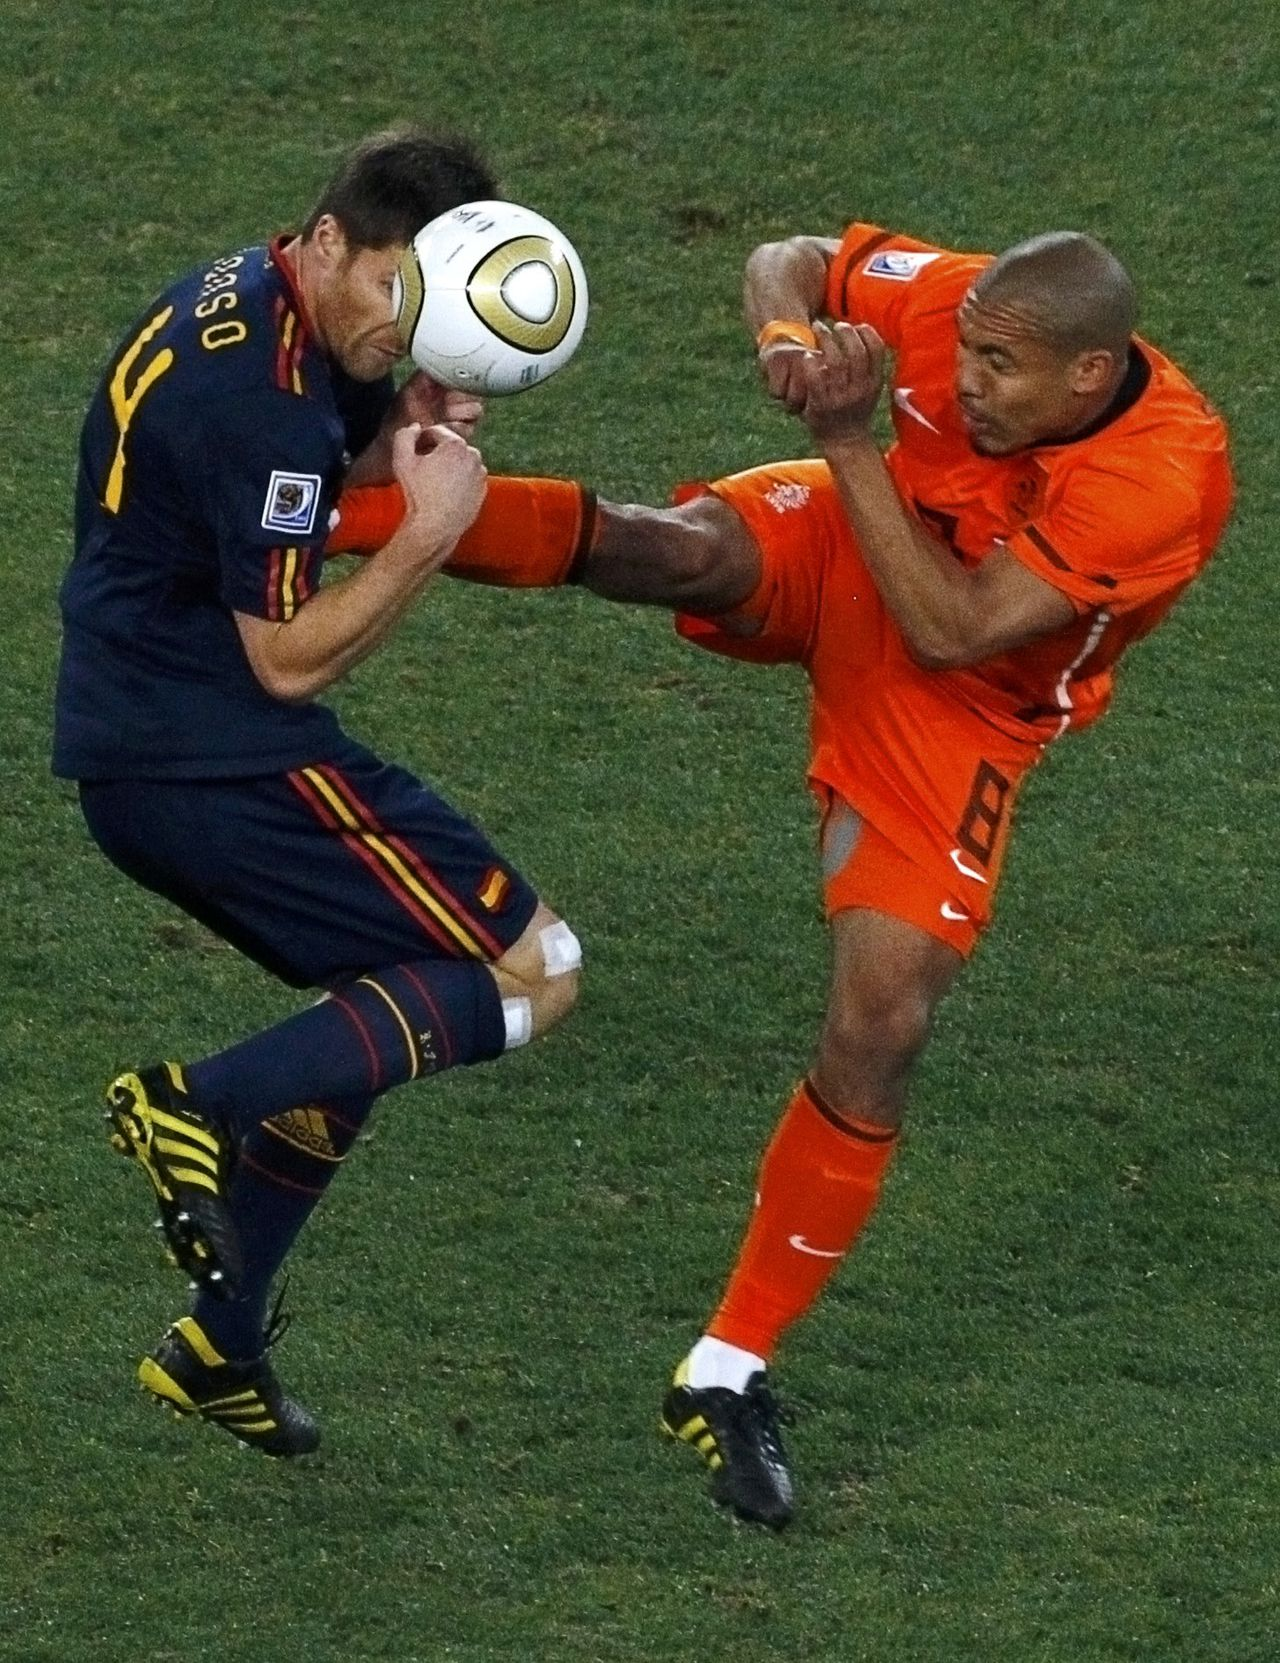 Spain's Xabi Alonso (L) gets a boot in his chest by Netherlands' Nigel de Jong as they fight for the ball during their 2010 World Cup final soccer match at Soccer City stadium in Johannesburg July 11, 2010. REUTERS/David Gray (SOUTH AFRICA - Tags: SPORT SOCCER WORLD CUP IMAGE OF THE DAY TOP PICTURE)